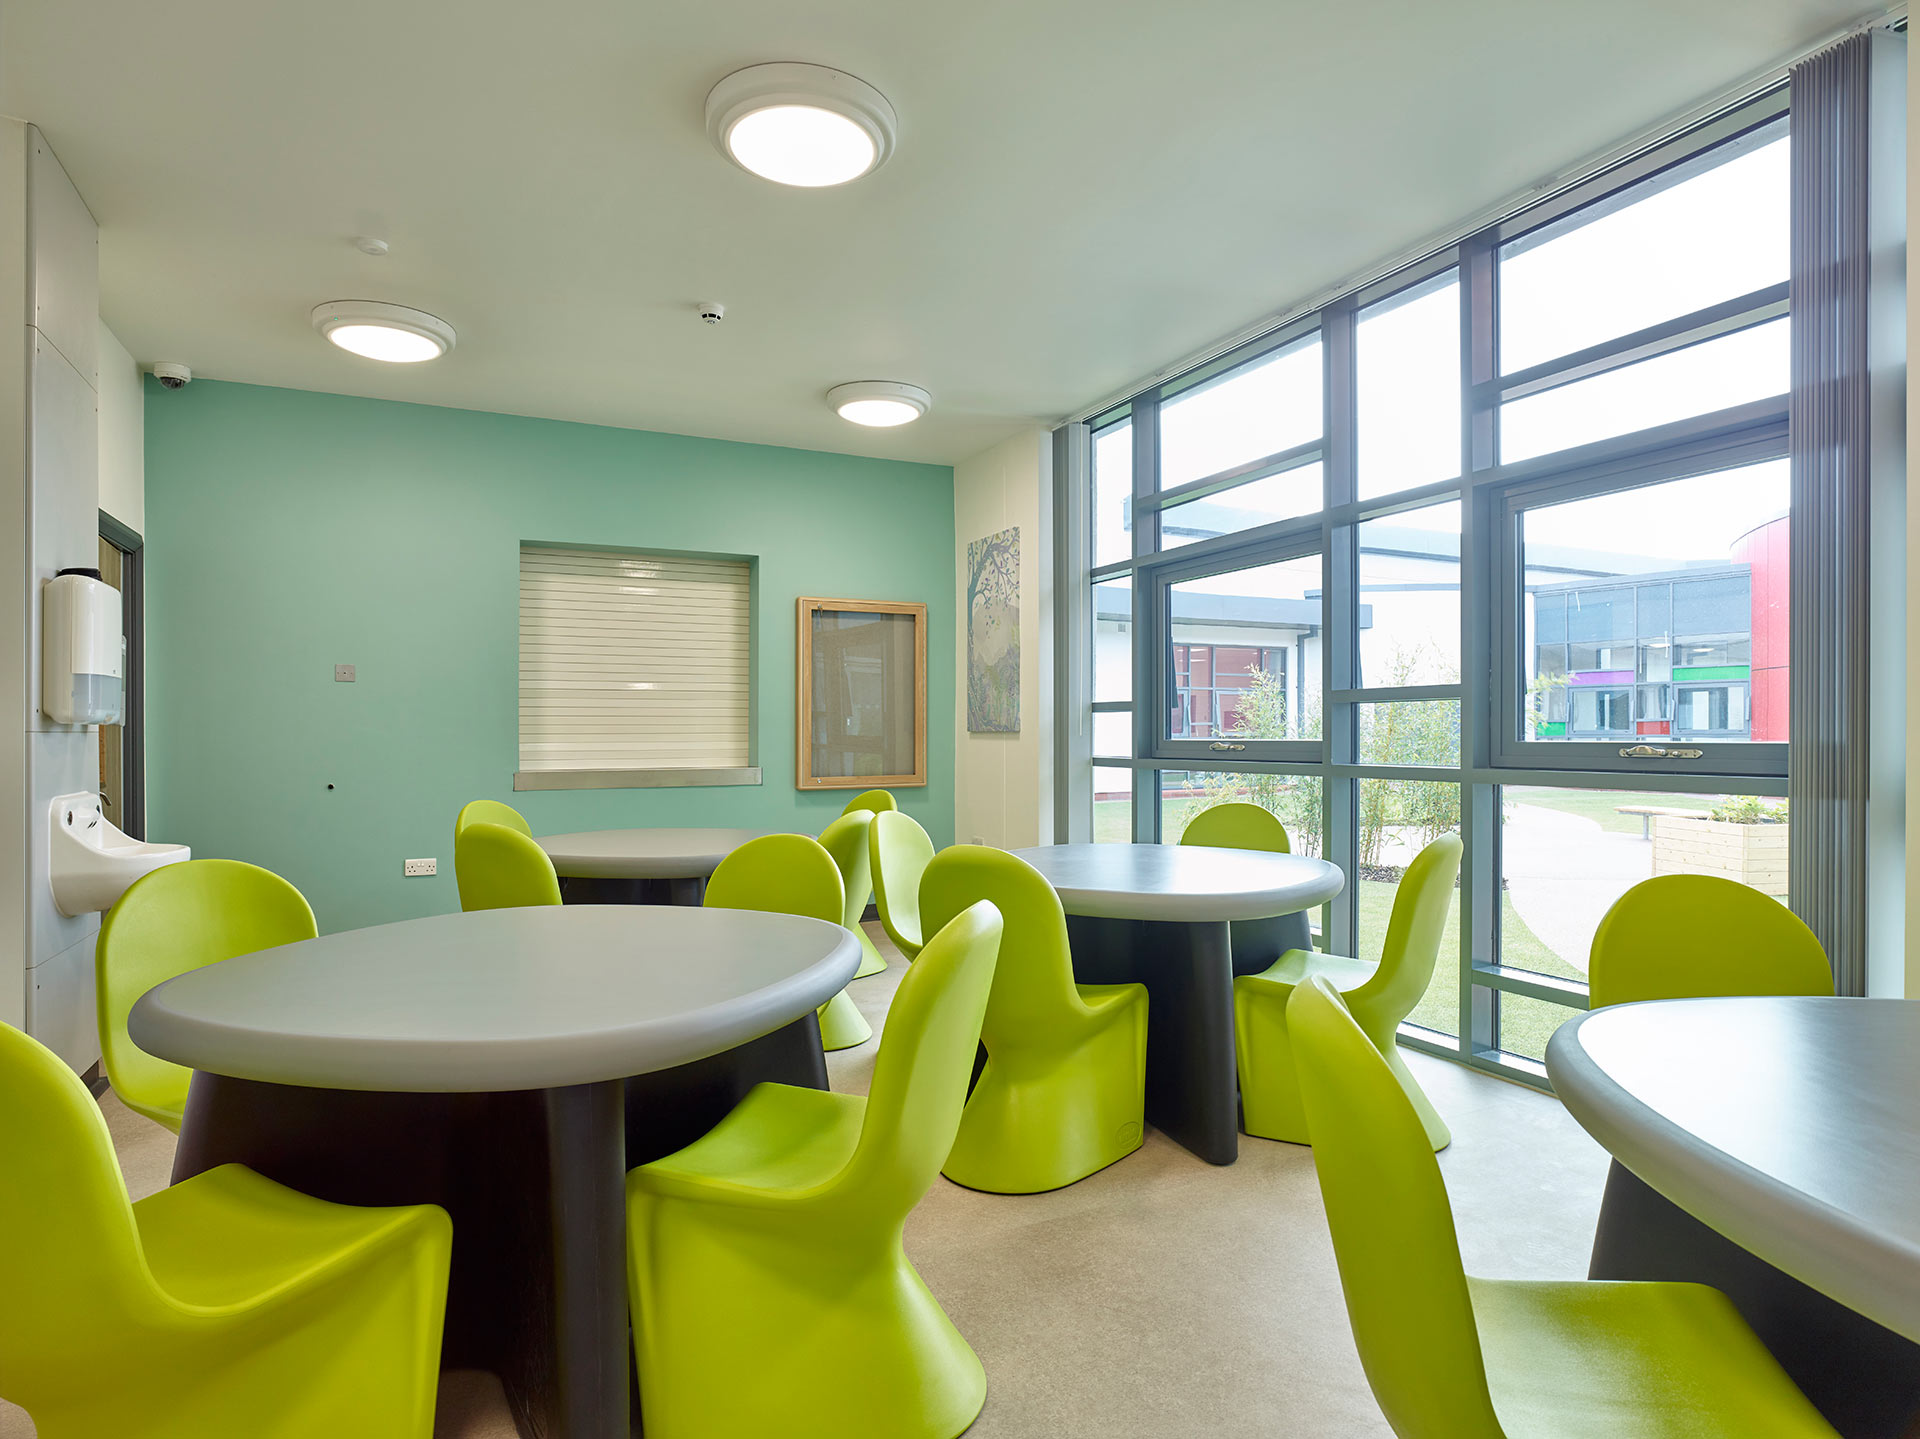 Anti ligature chairs in classroom at Ancora House